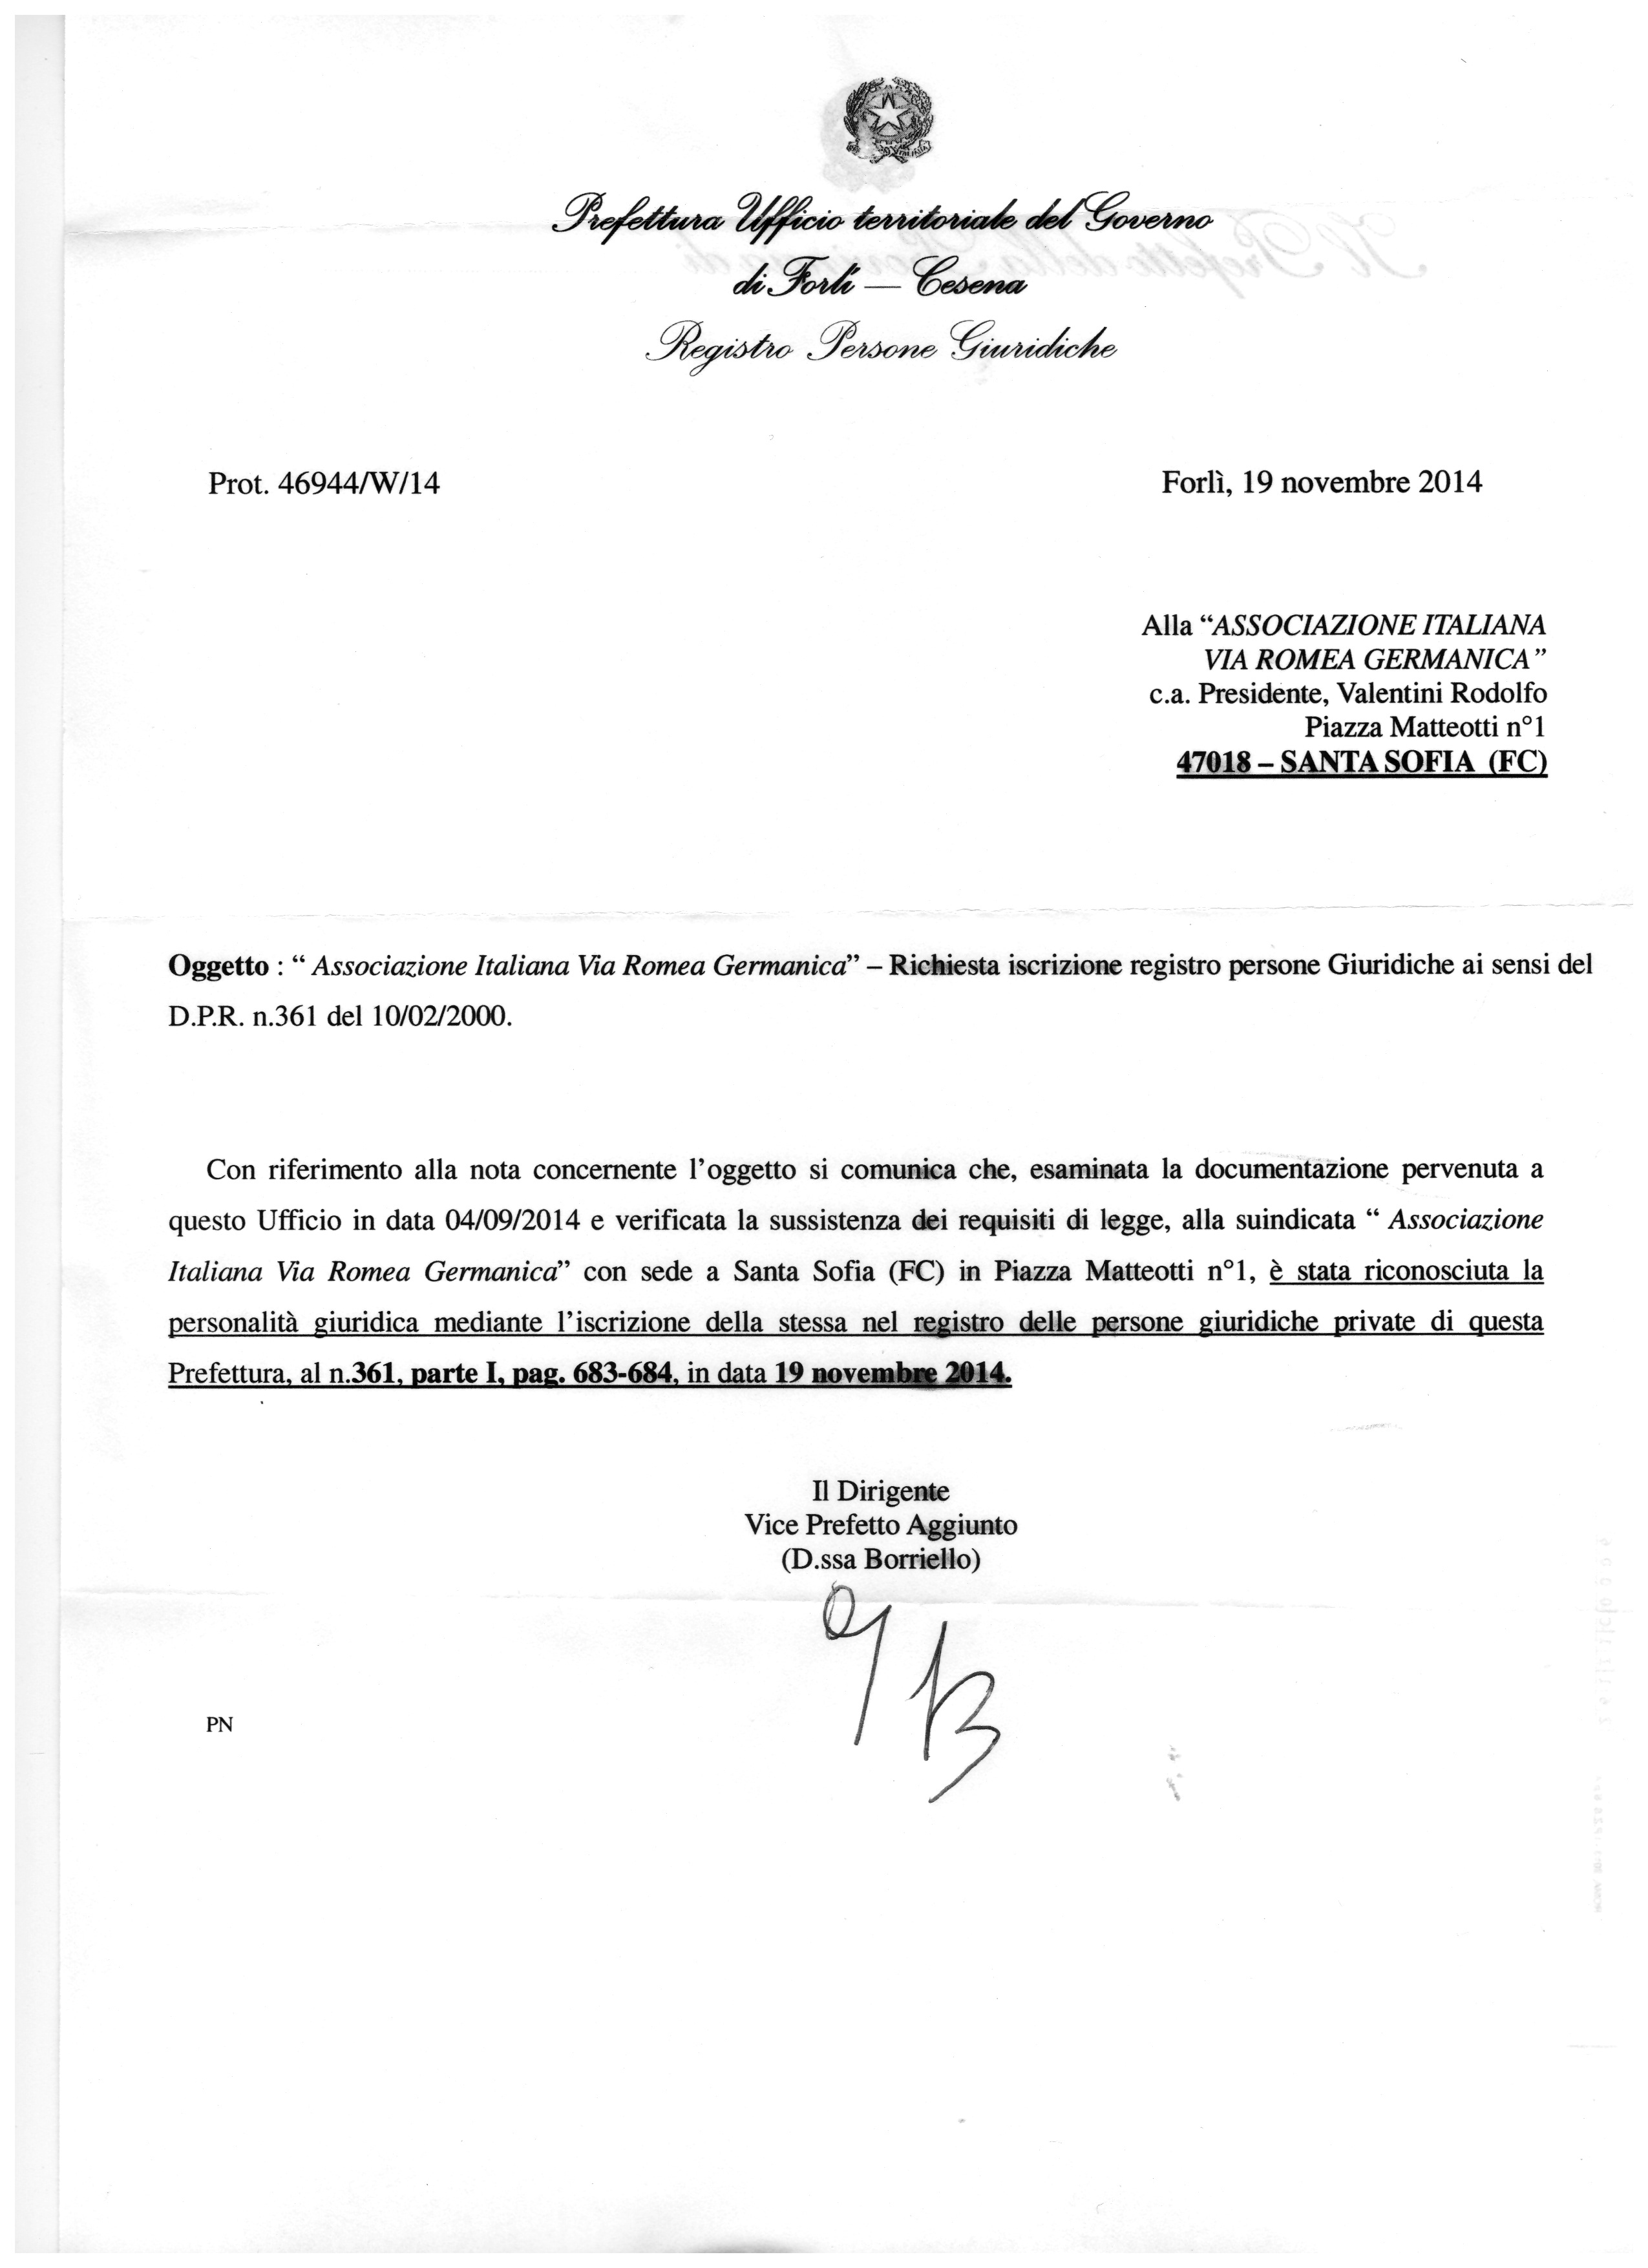 ACT OF THE PREFECTURE of Forl¬ Cesena